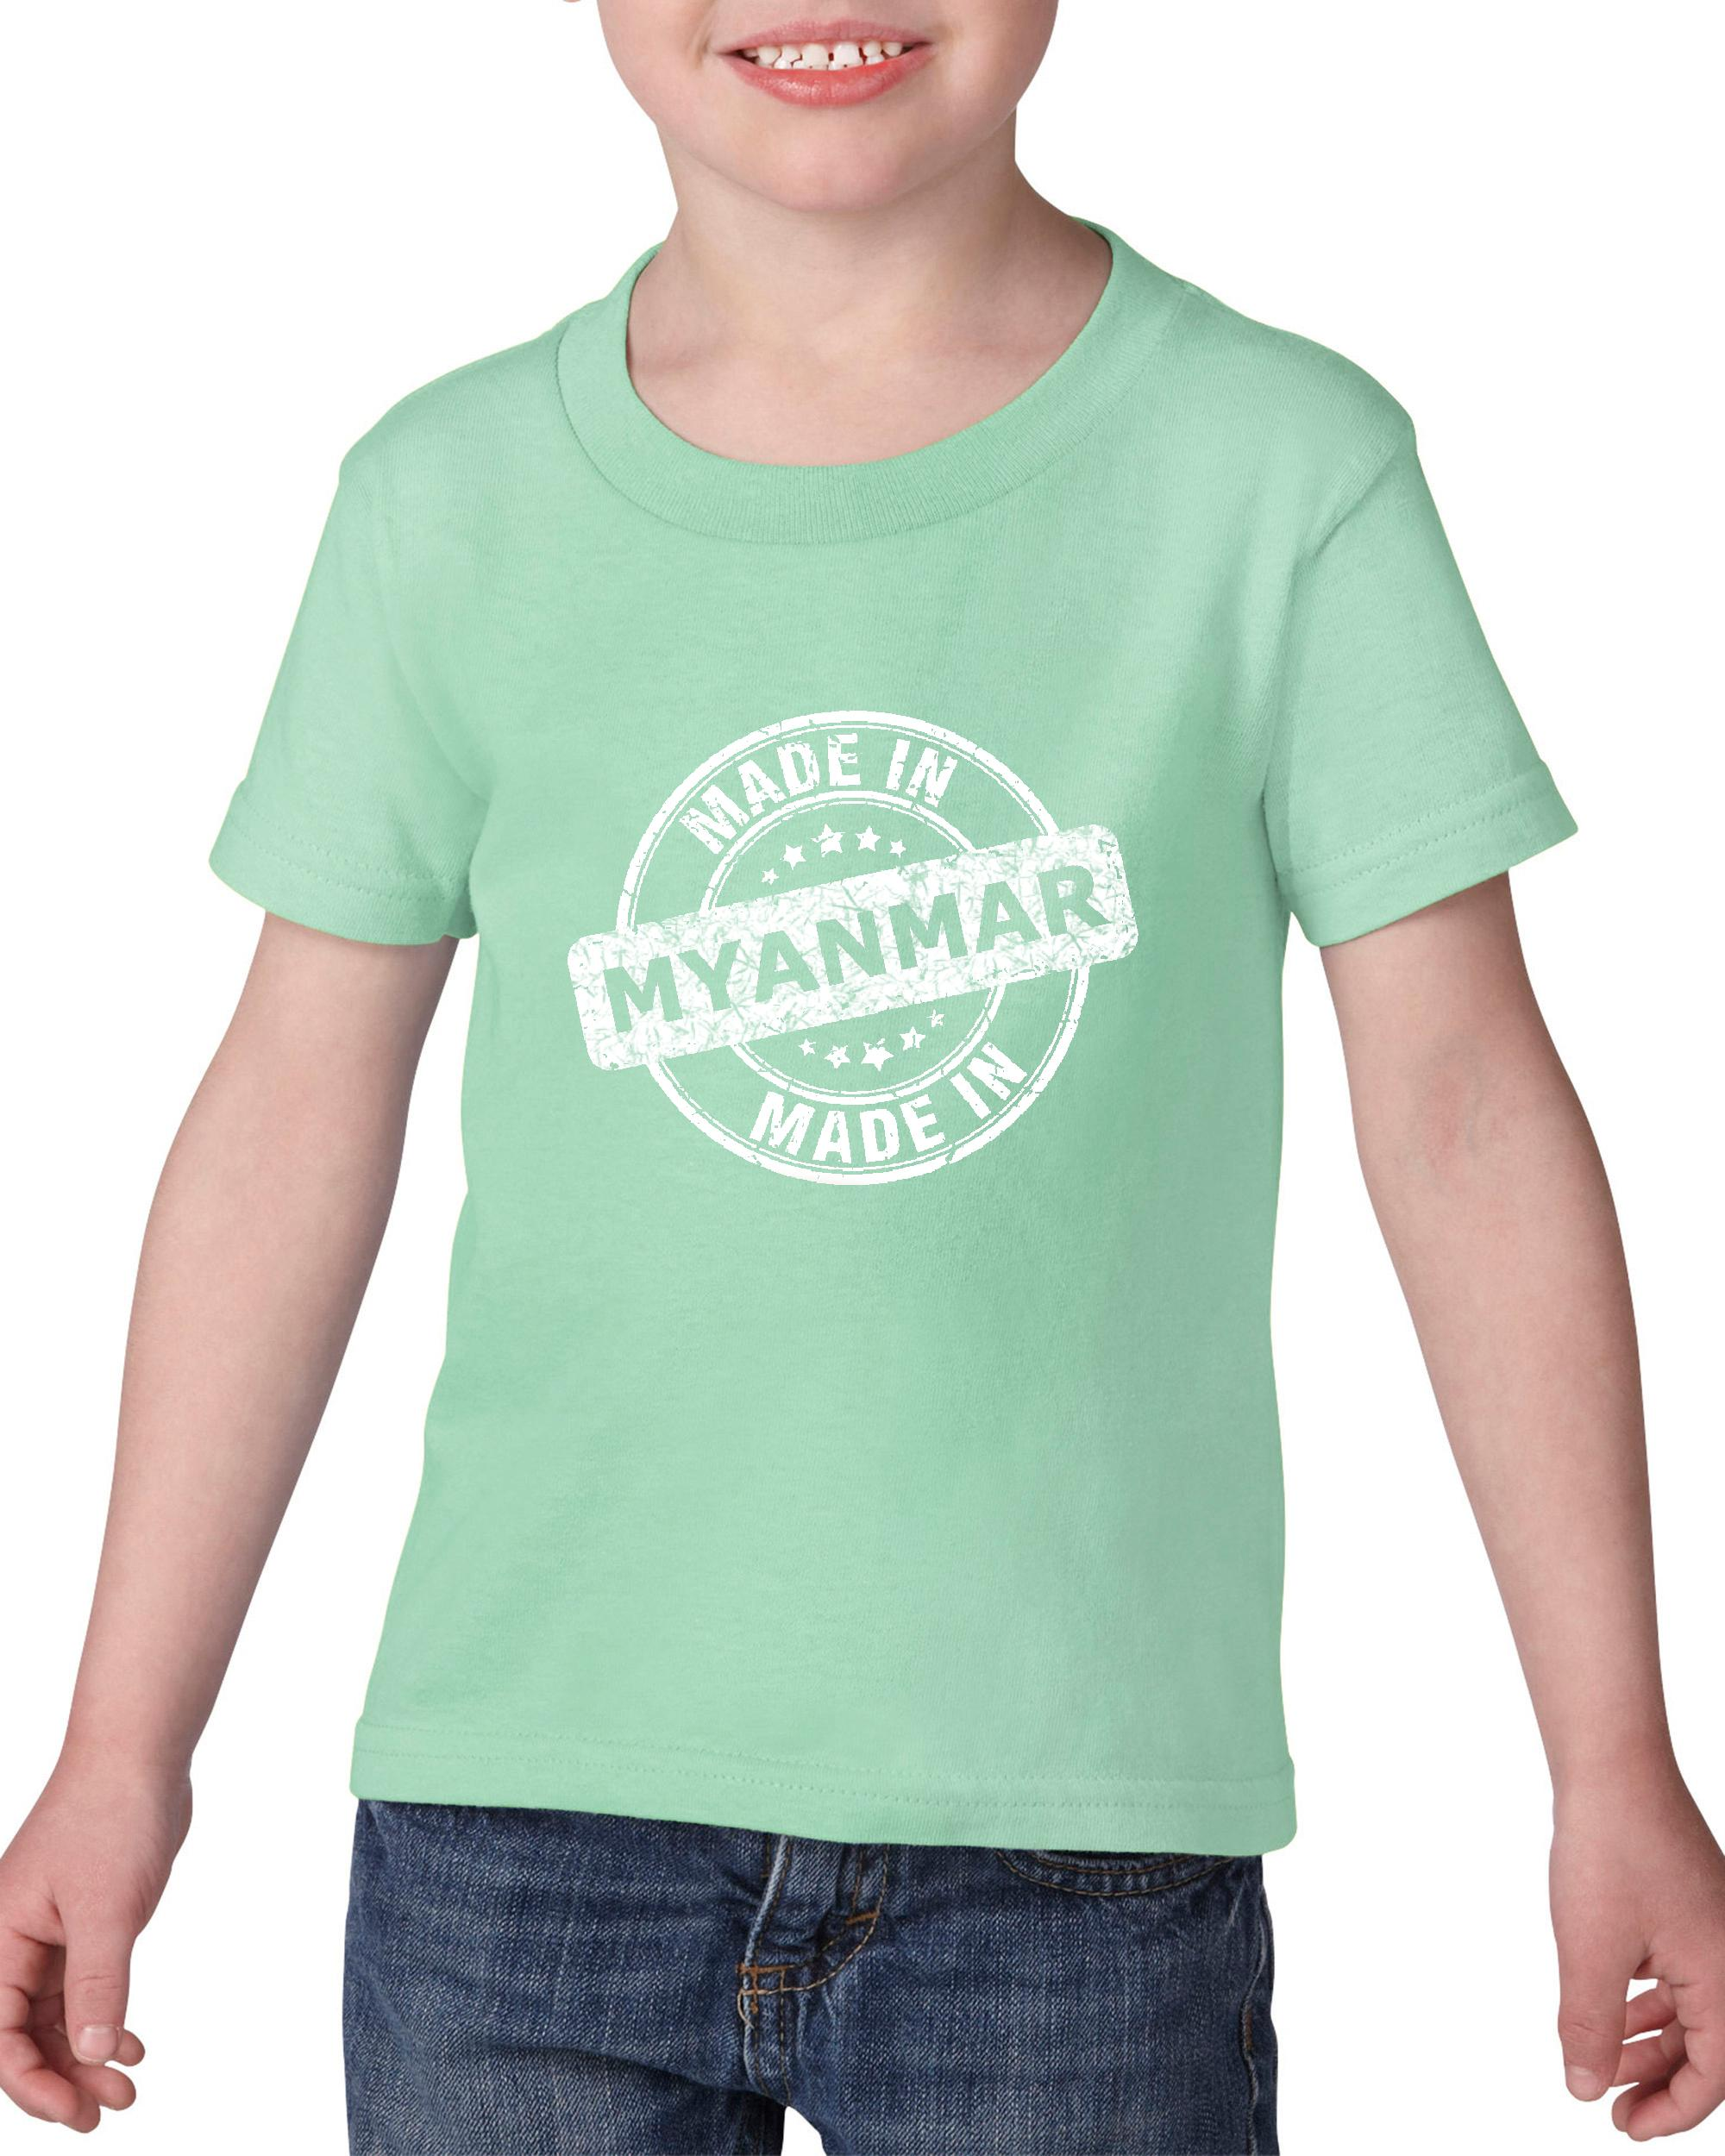 Artix Made In What to do in Myanmar? Travel Time Flag Map Tour Guide Flights Top 10 Things To Do Heavy Cotton Toddler Kids T-Shirt Tee Clothing